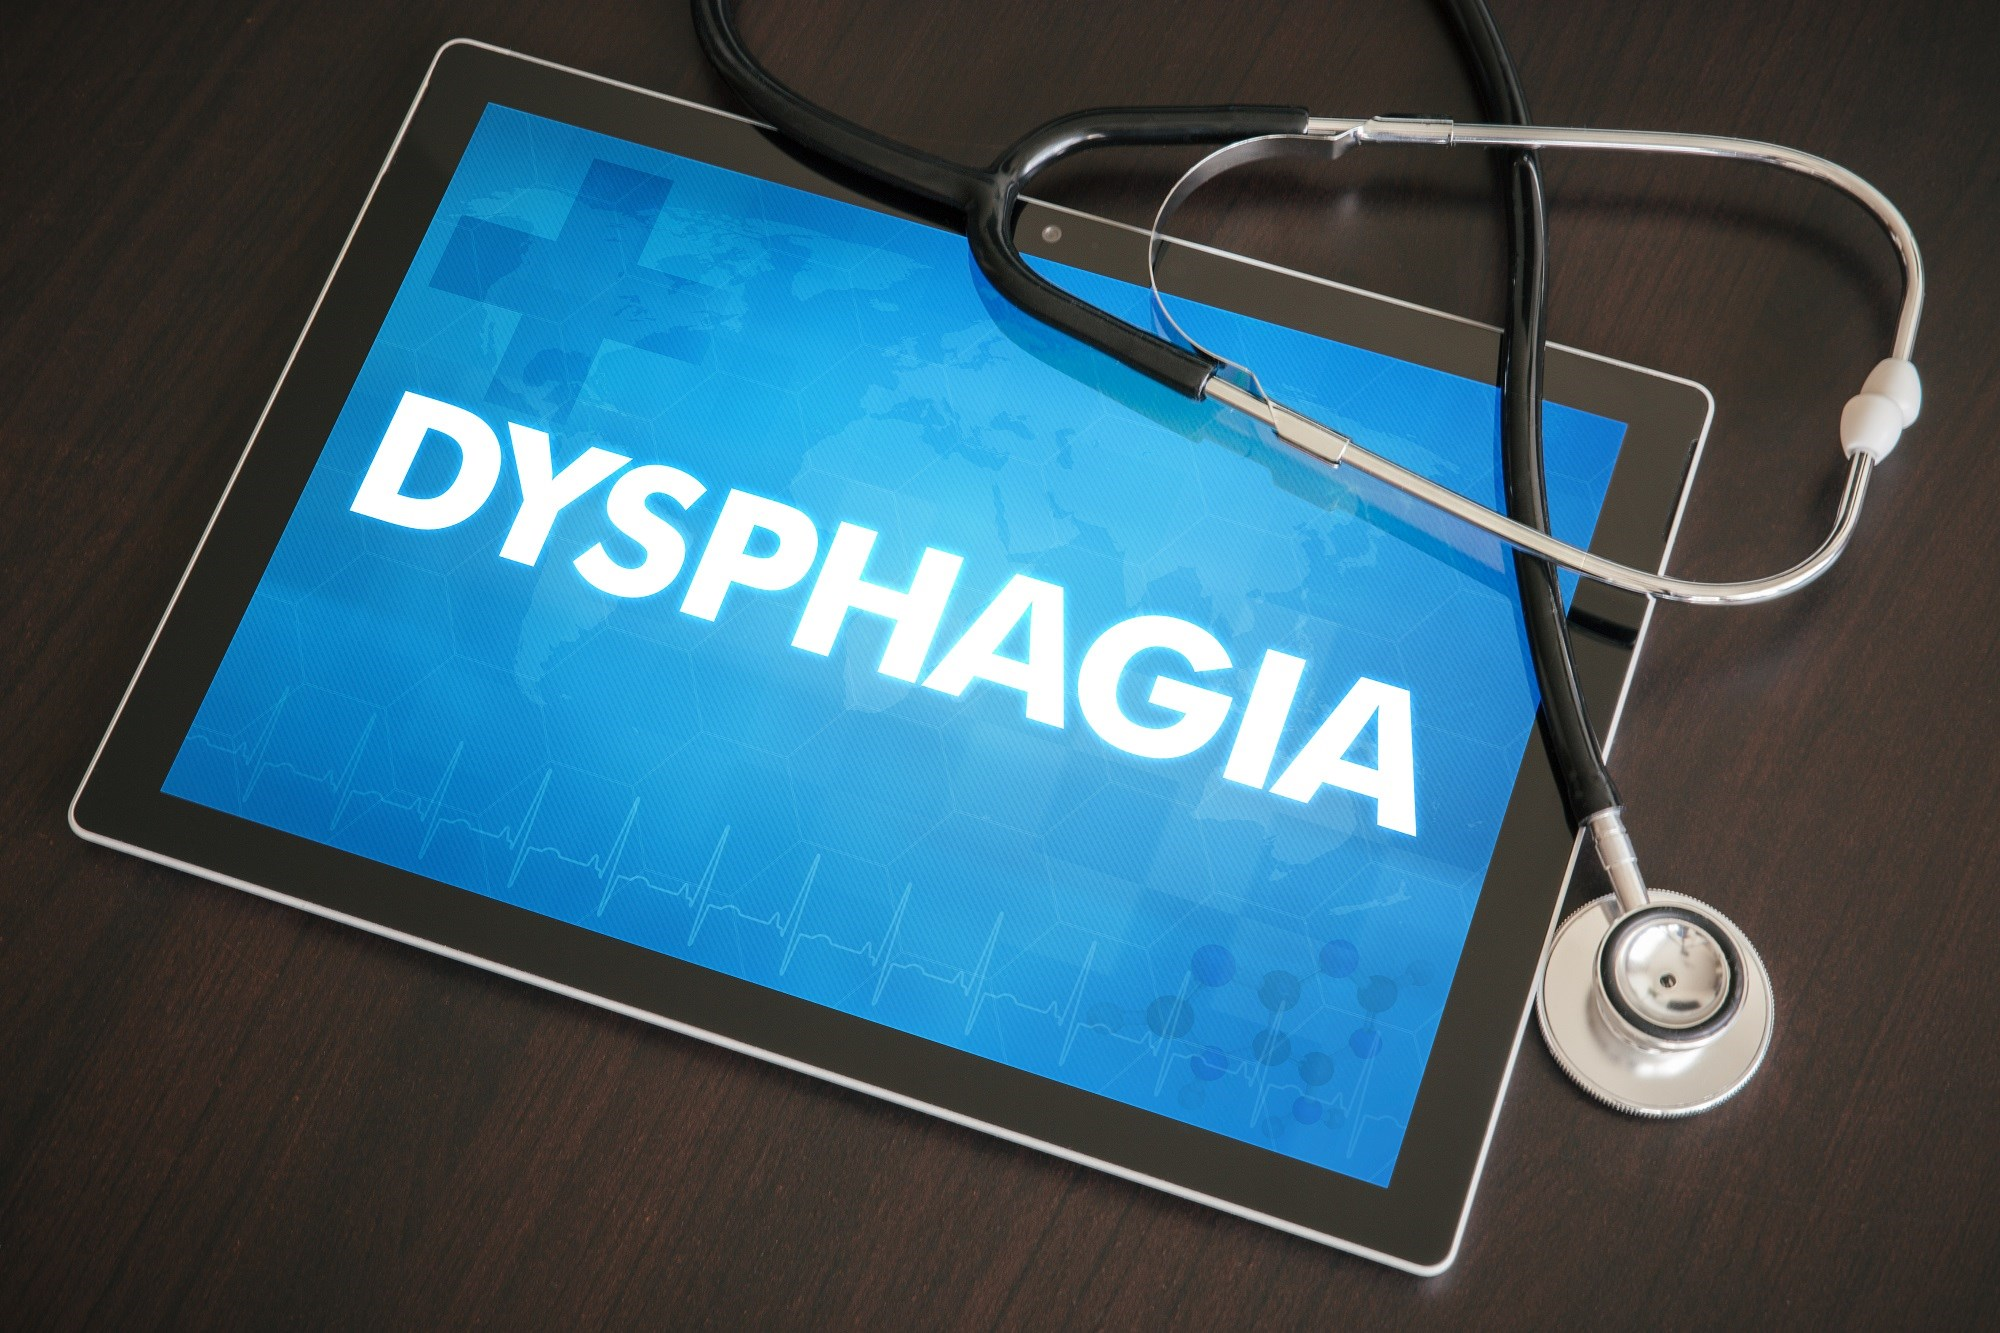 The Munich dysphagia test–Parkinson disease is a 26-question self-reported screening tool to detect dysphagia in patients with Parkinson disease.